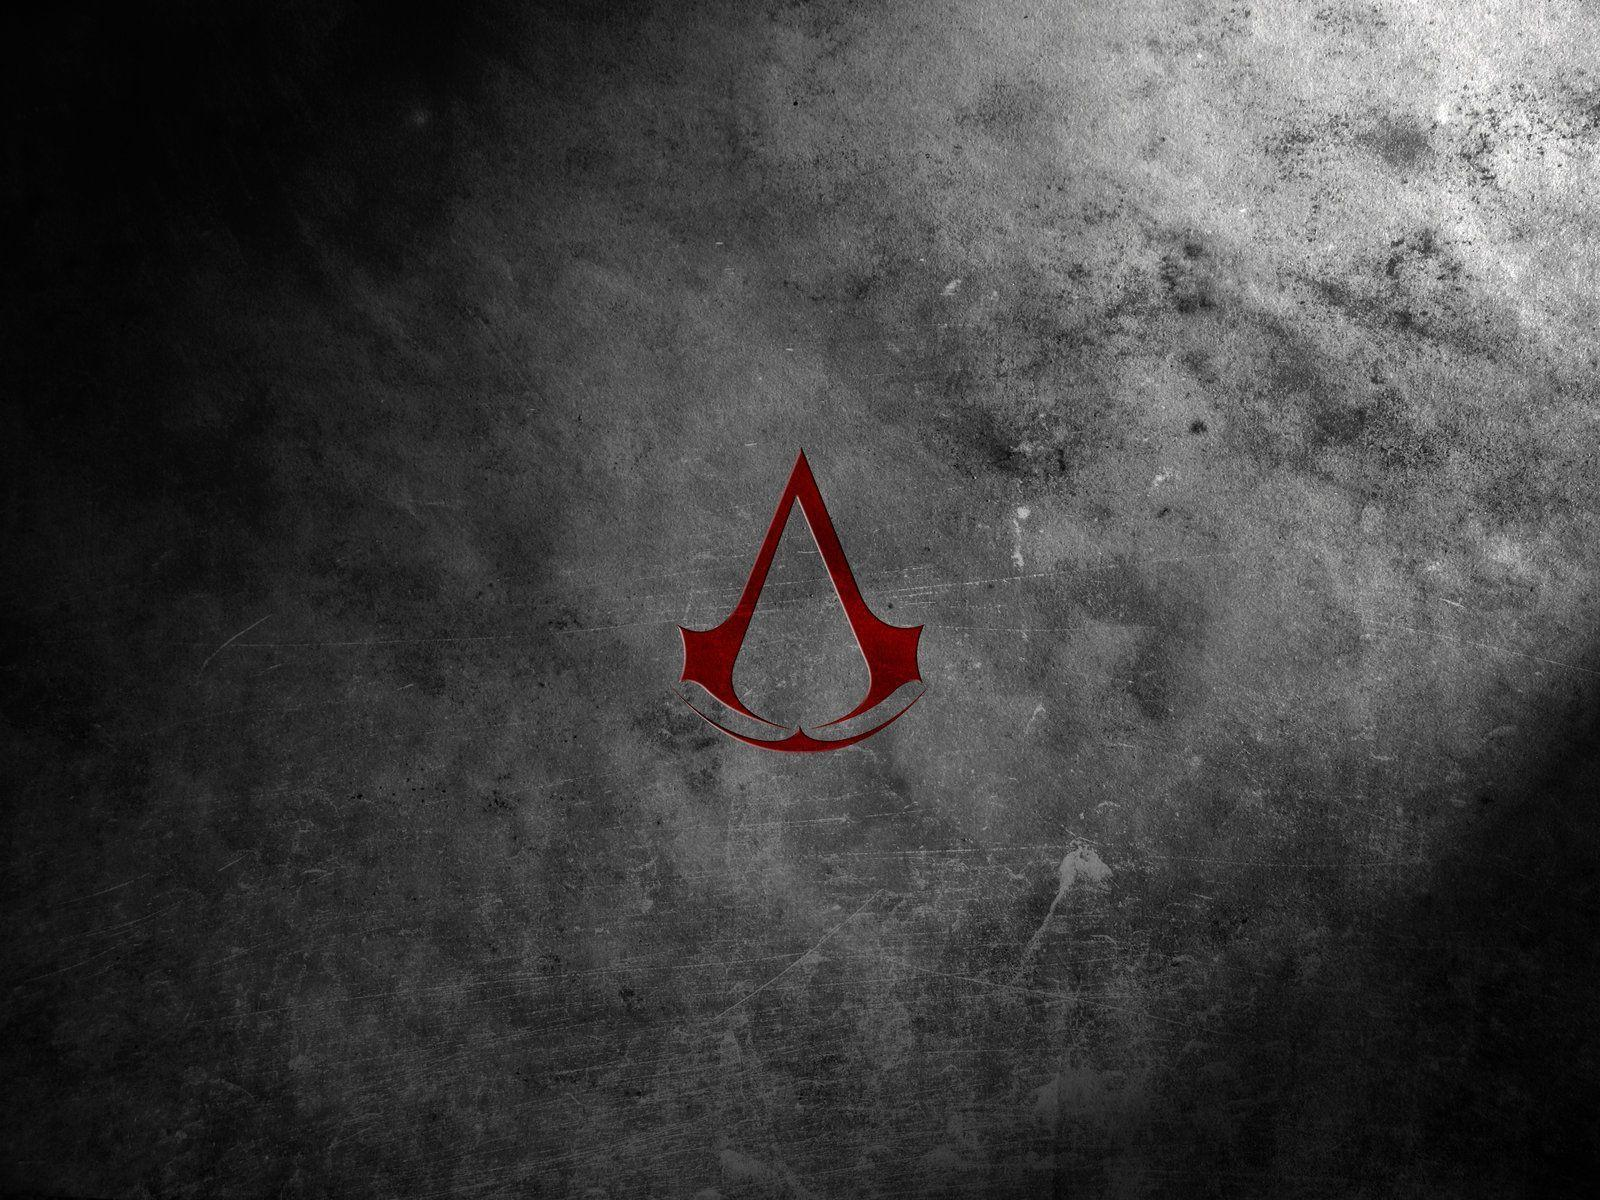 assassins creed logo wallpapers games